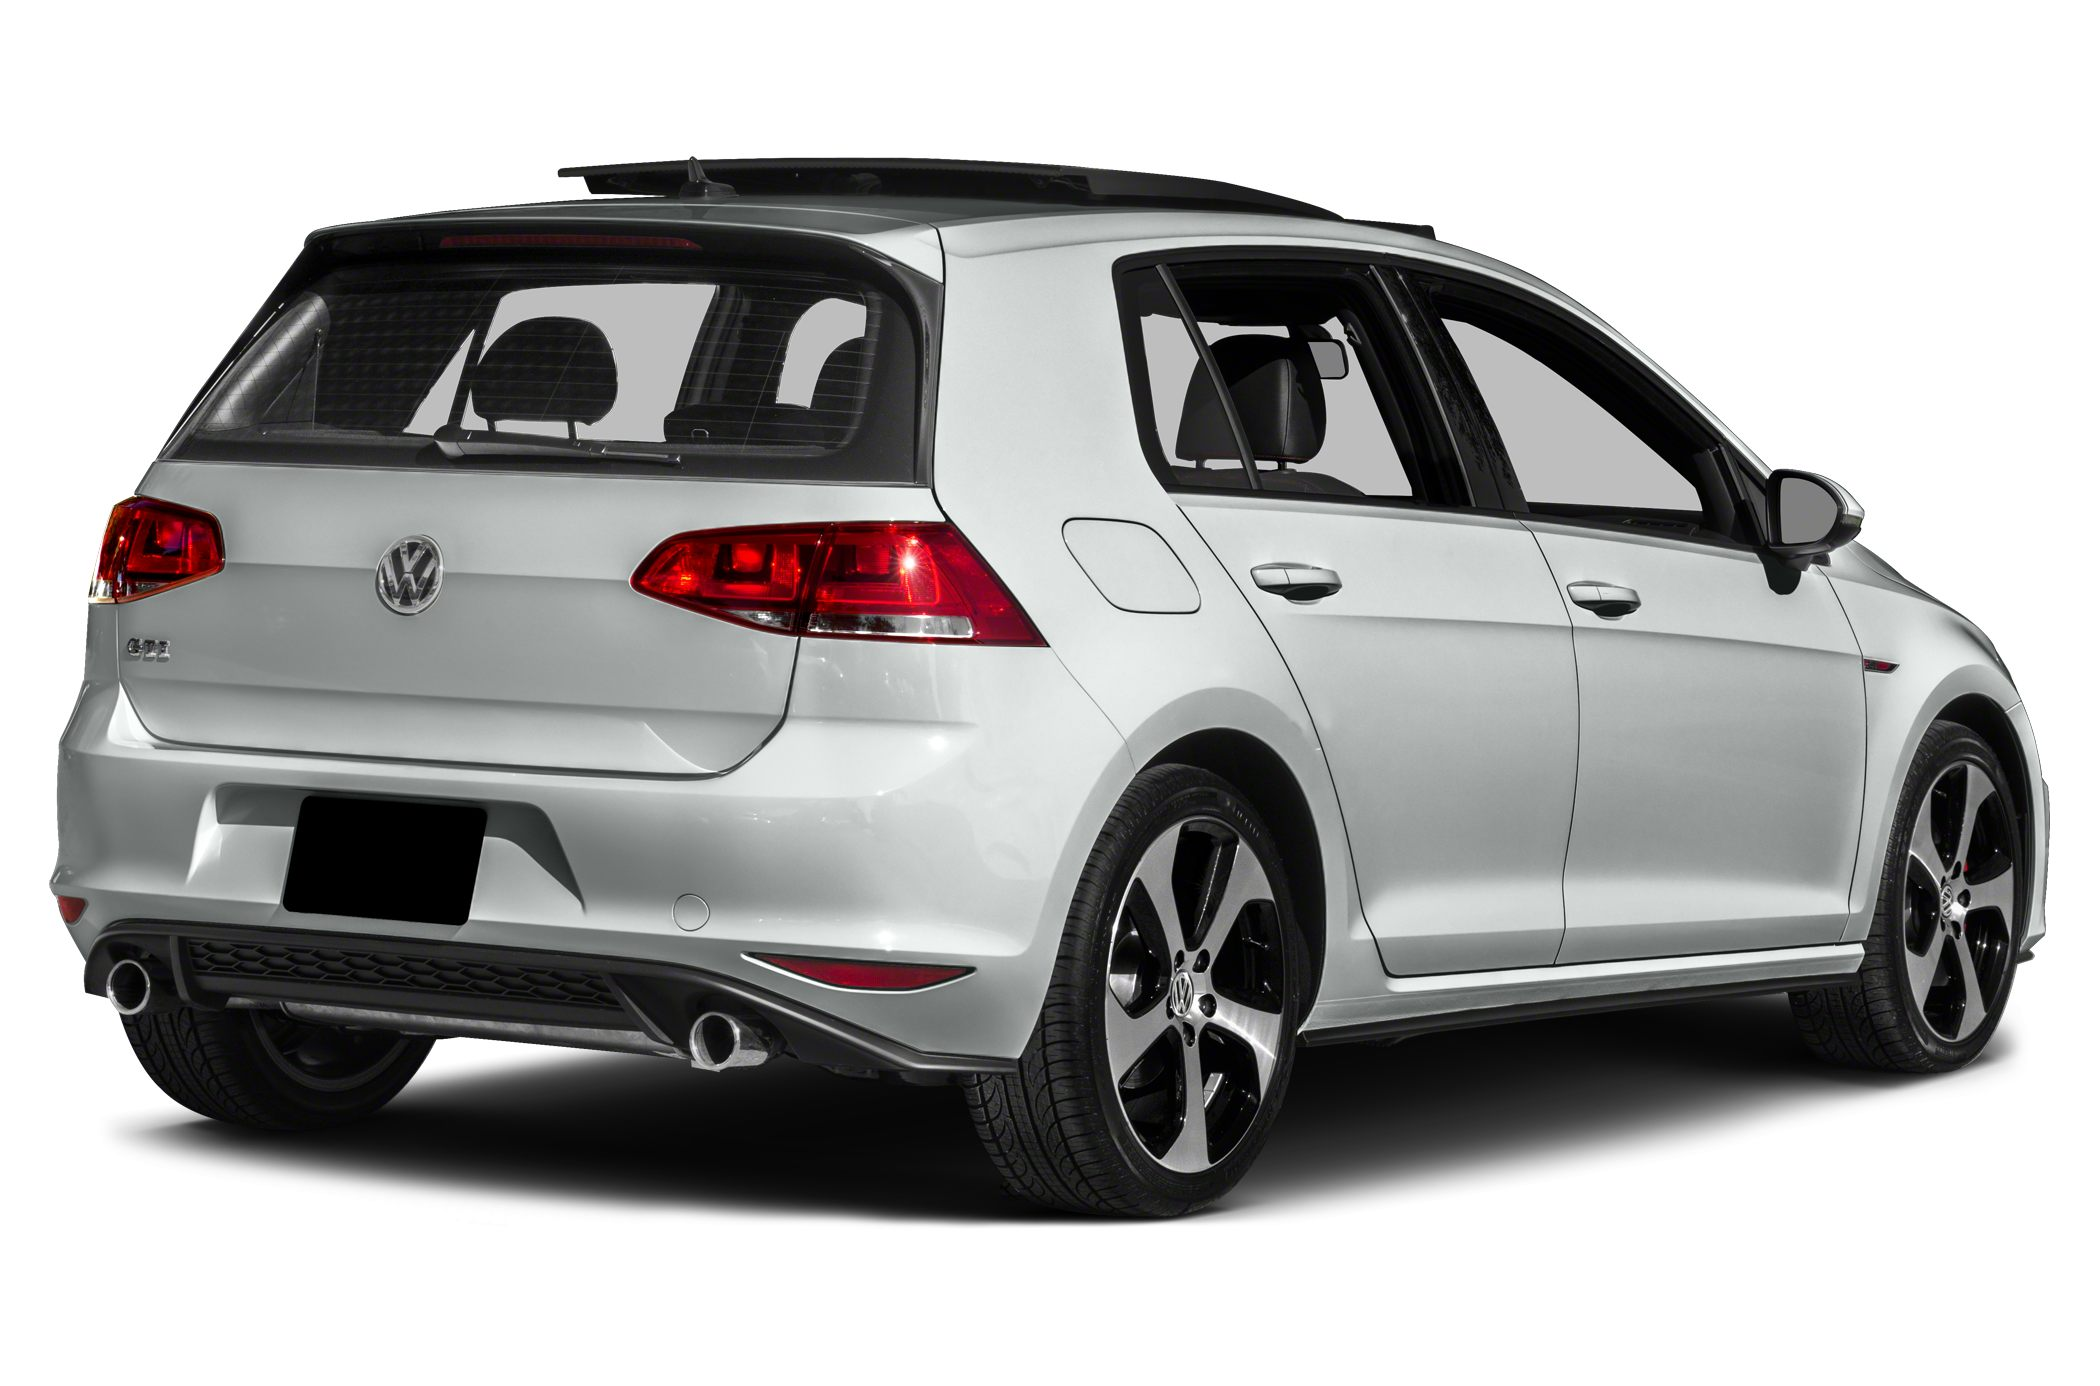 2016 Volkswagen Golf Gti York >> 2017 Volkswagen Golf GTI Reviews, Specs and Prices | Cars.com